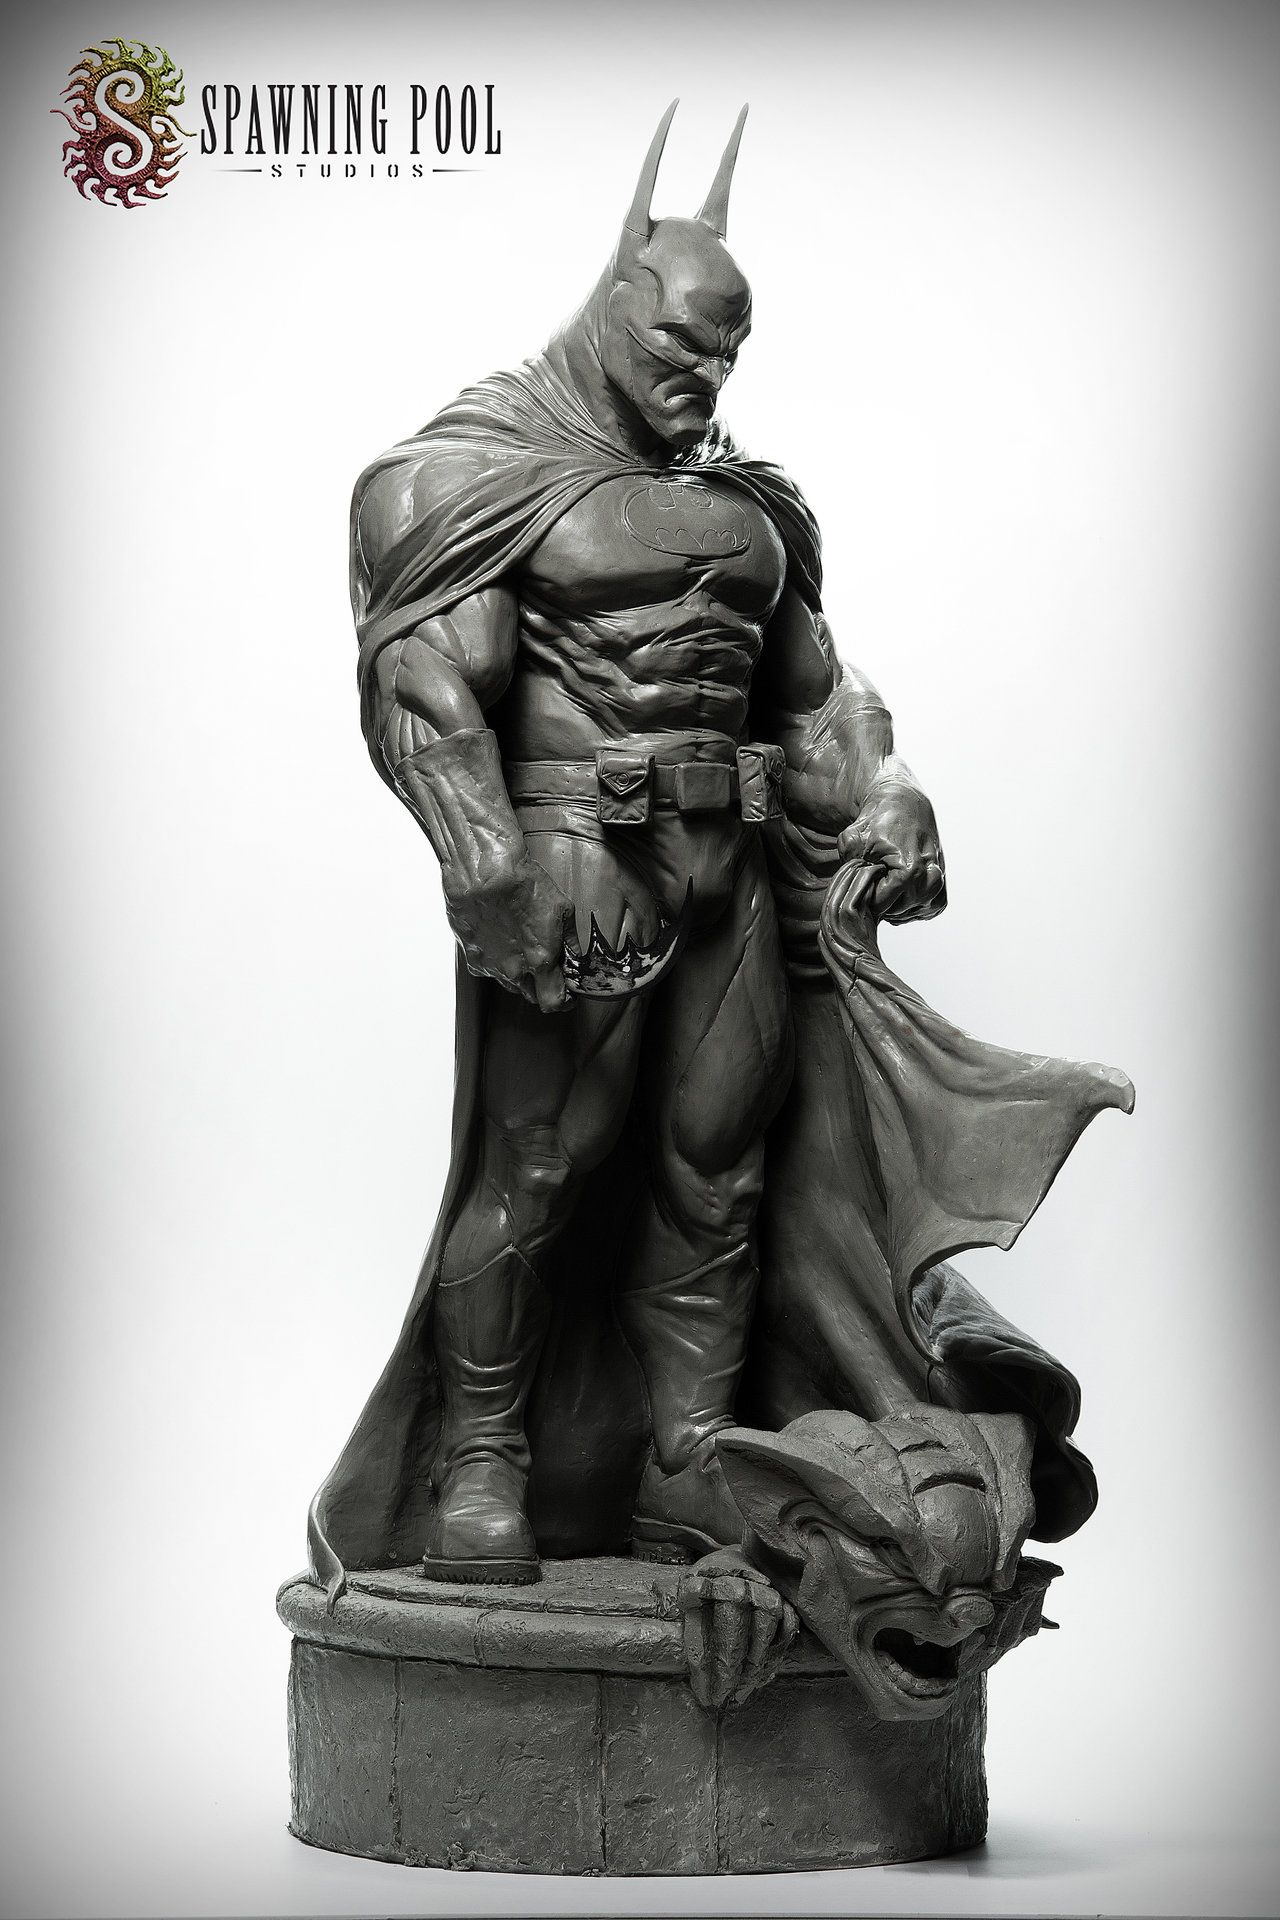 Pin By Rich Houghton On Toys In 2019 Pinterest Batman